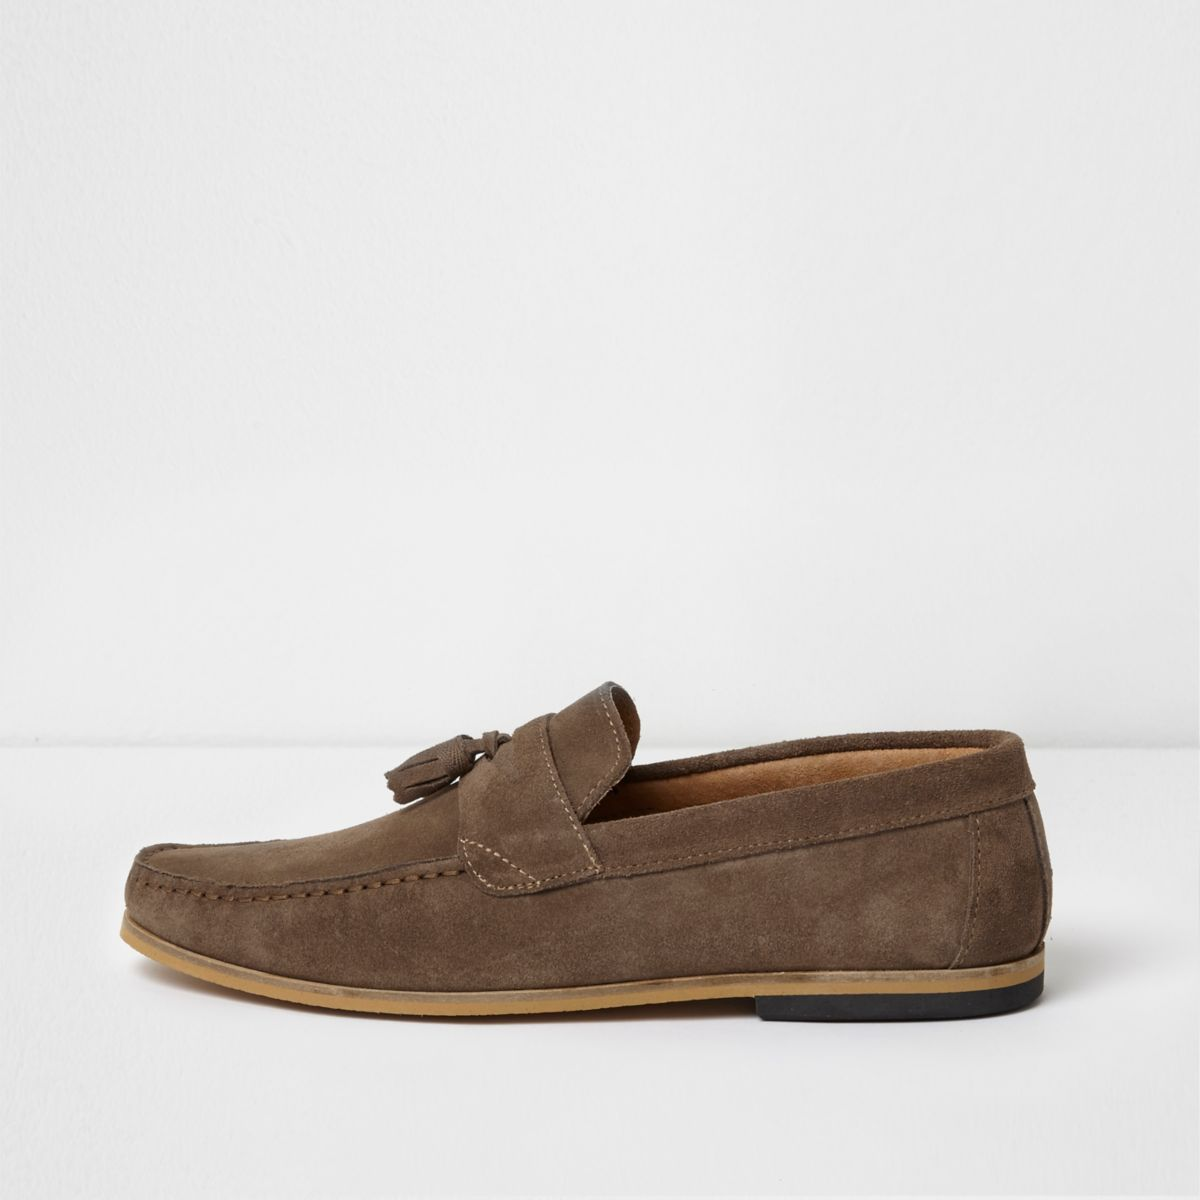 Suede Slip On&Nbsp Loafers River Island Tan Men Necessary